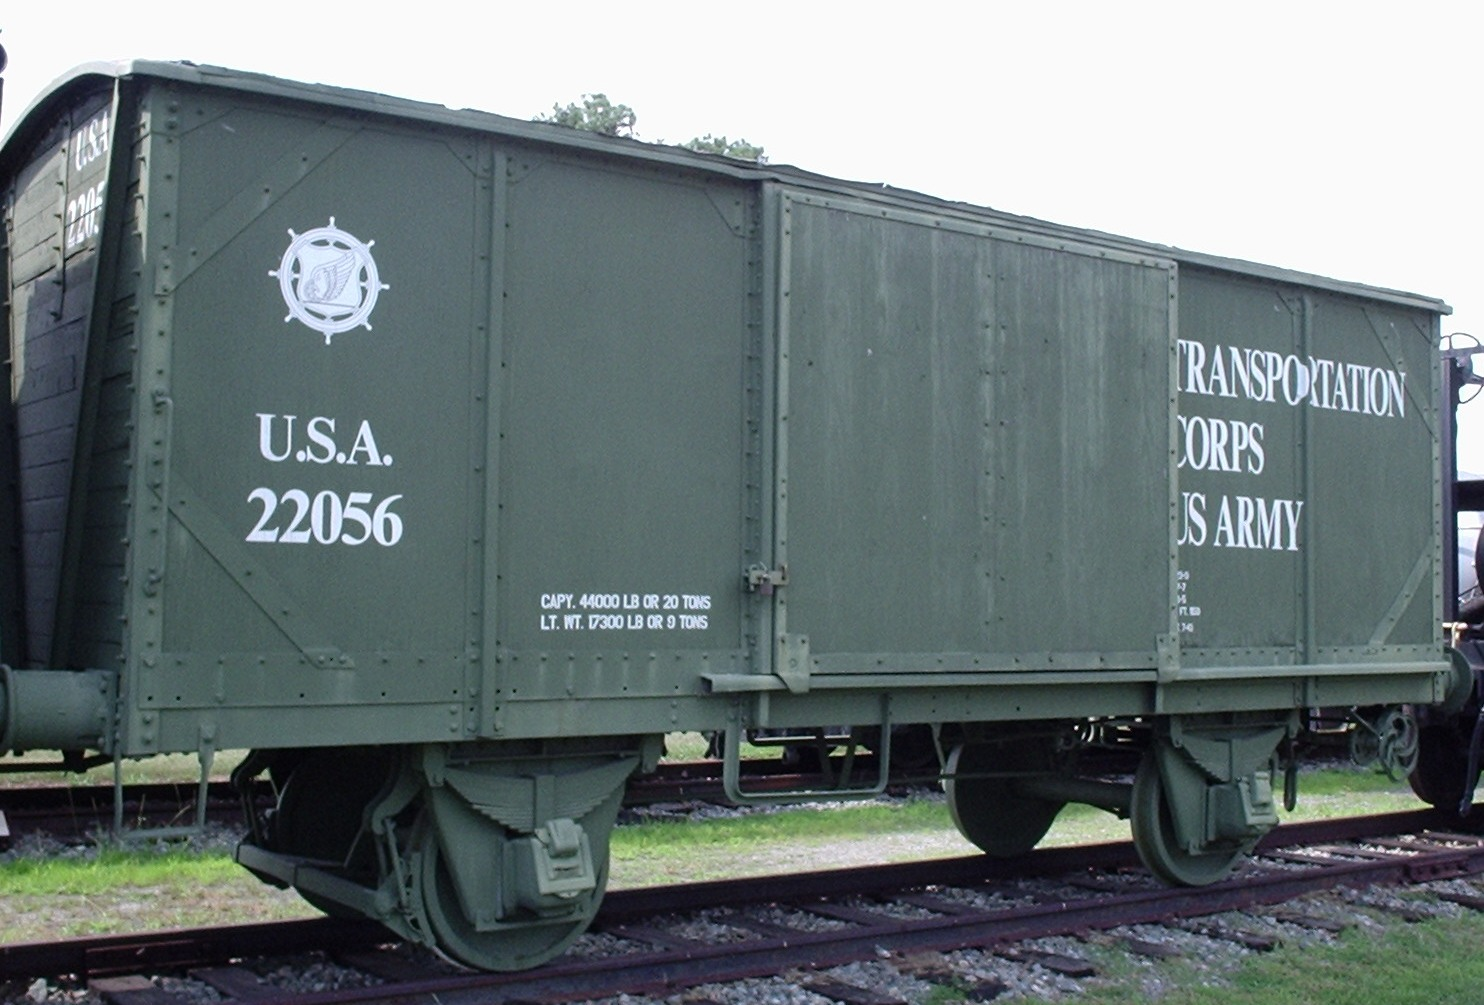 20-Ton Capacity Boxcar - Old Technology Could Become New Energy Storage